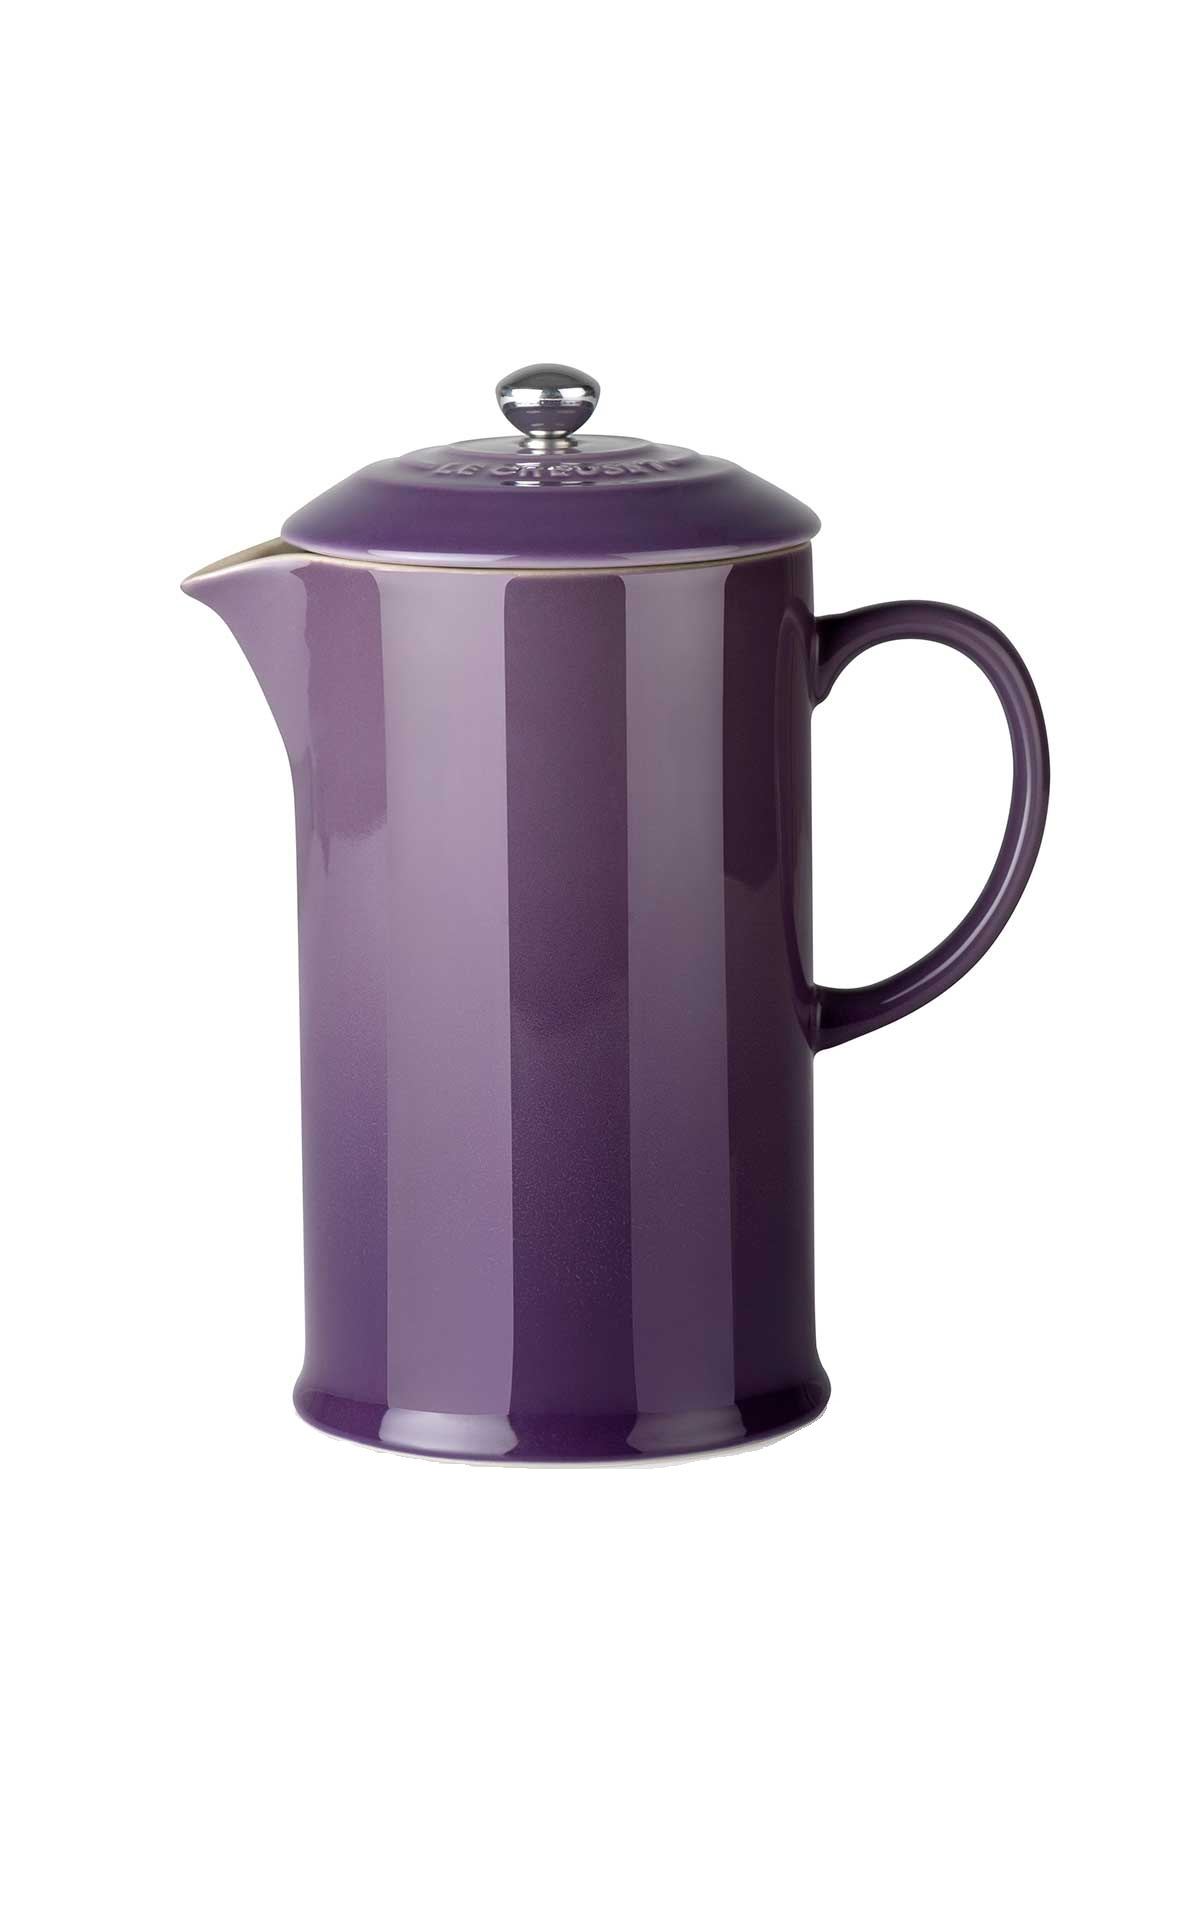 Coffee maker from Le Creuset